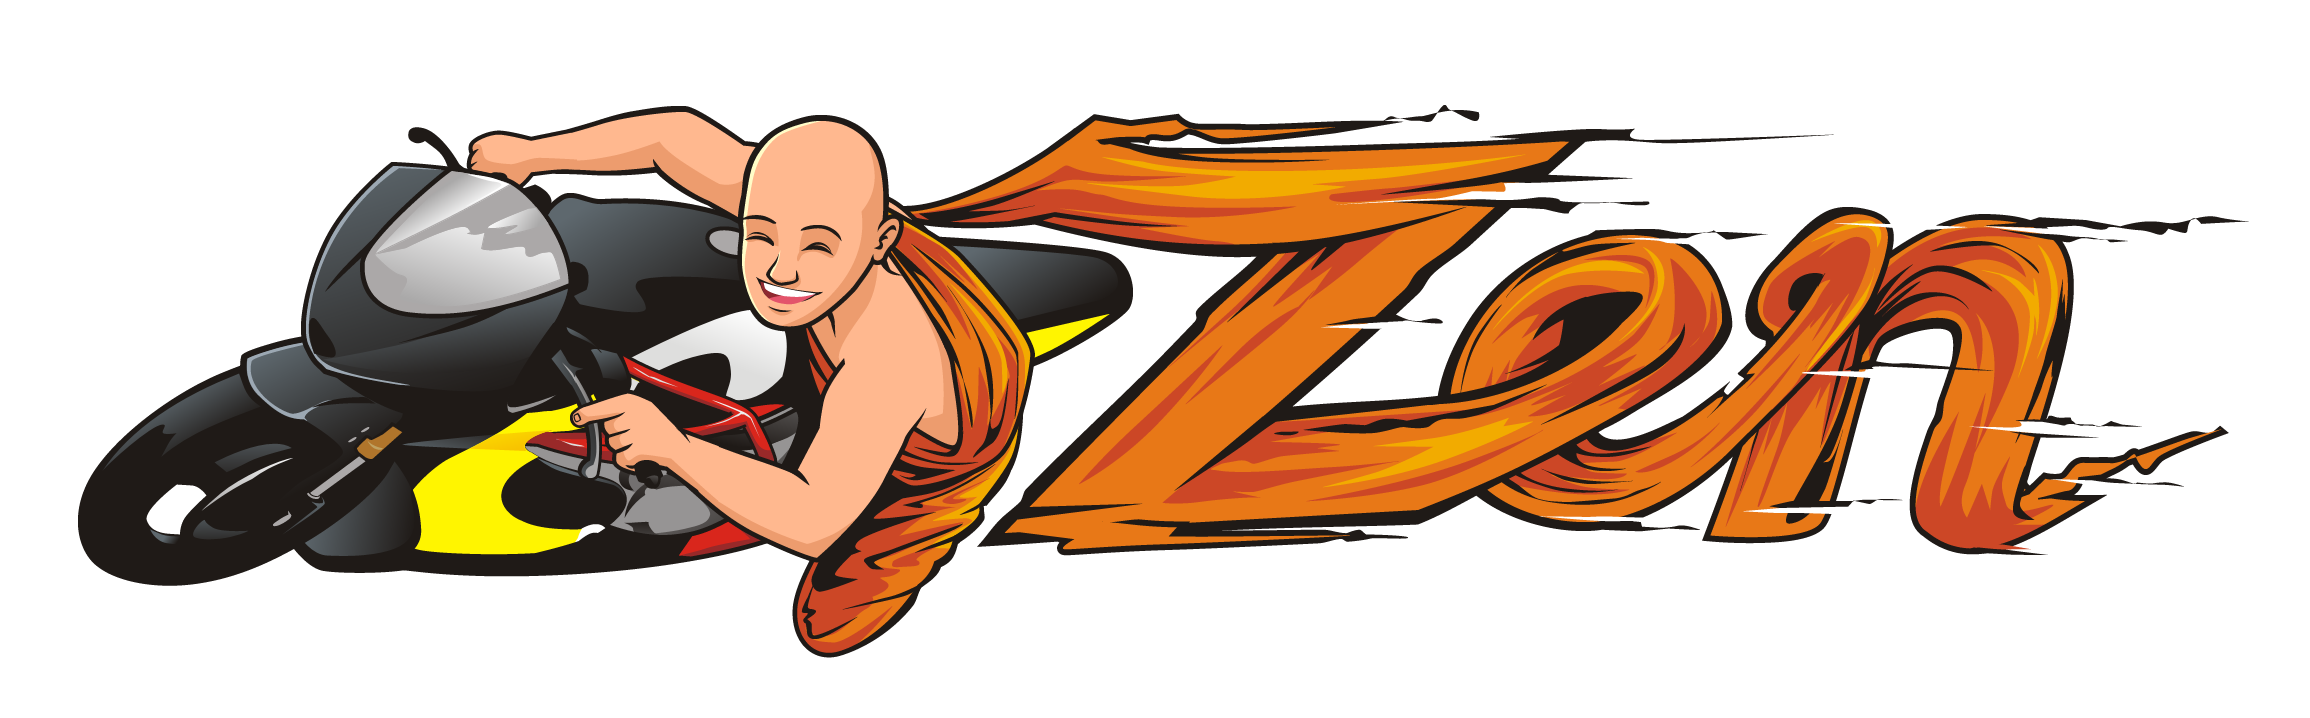 Zen Motorcycle Racing Logo